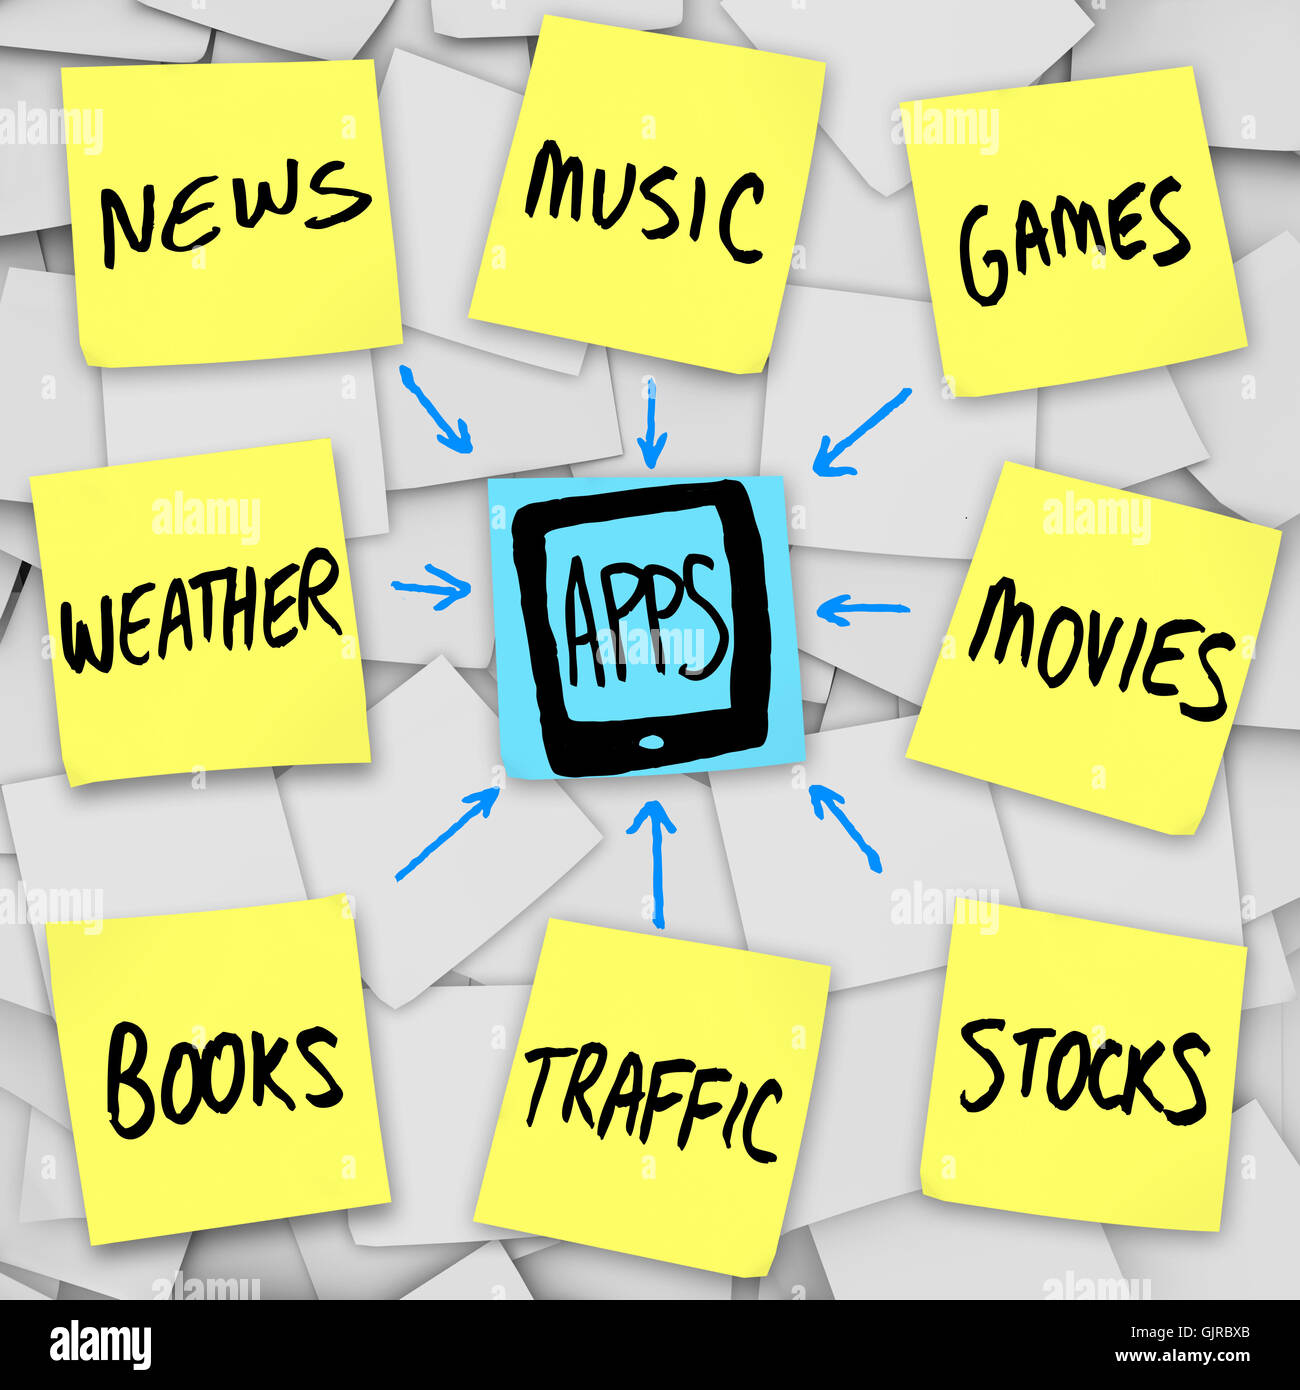 Apps Download into Smart Mobile Phone - Sticky Notes Stock